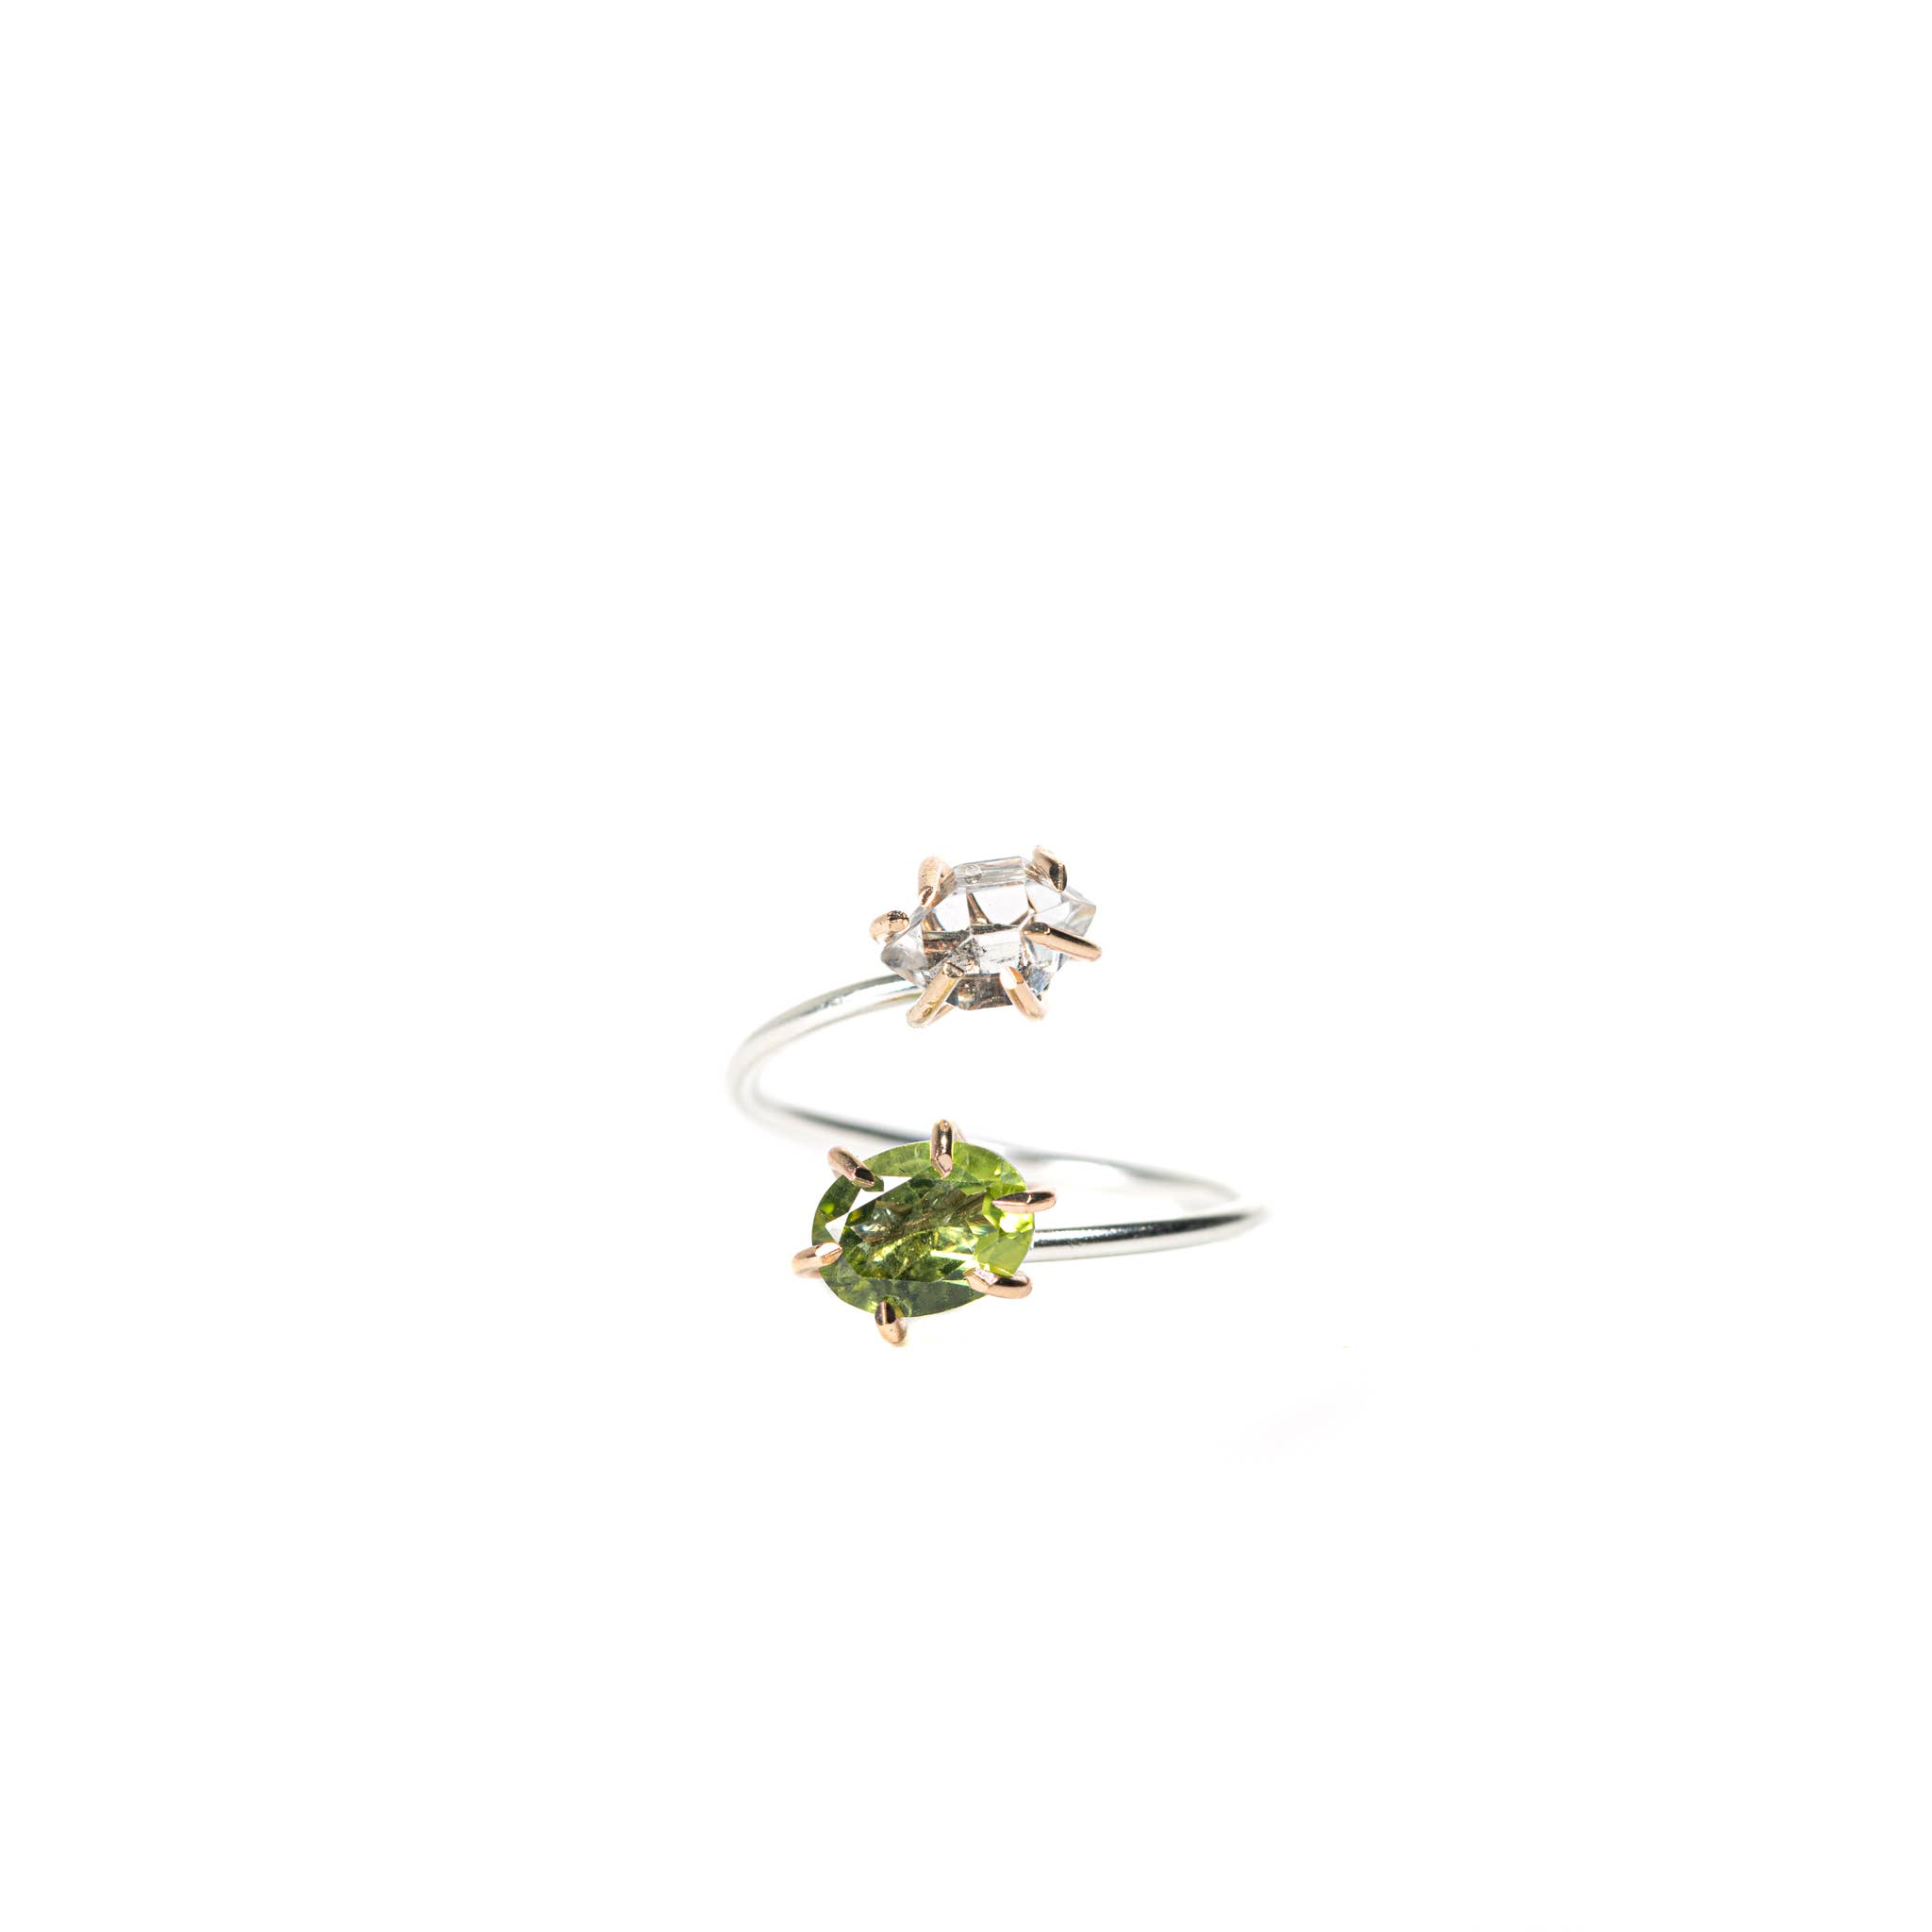 Tourmaline ring with dou lble tourmaline crystals in 14k gold filled adjustable setting